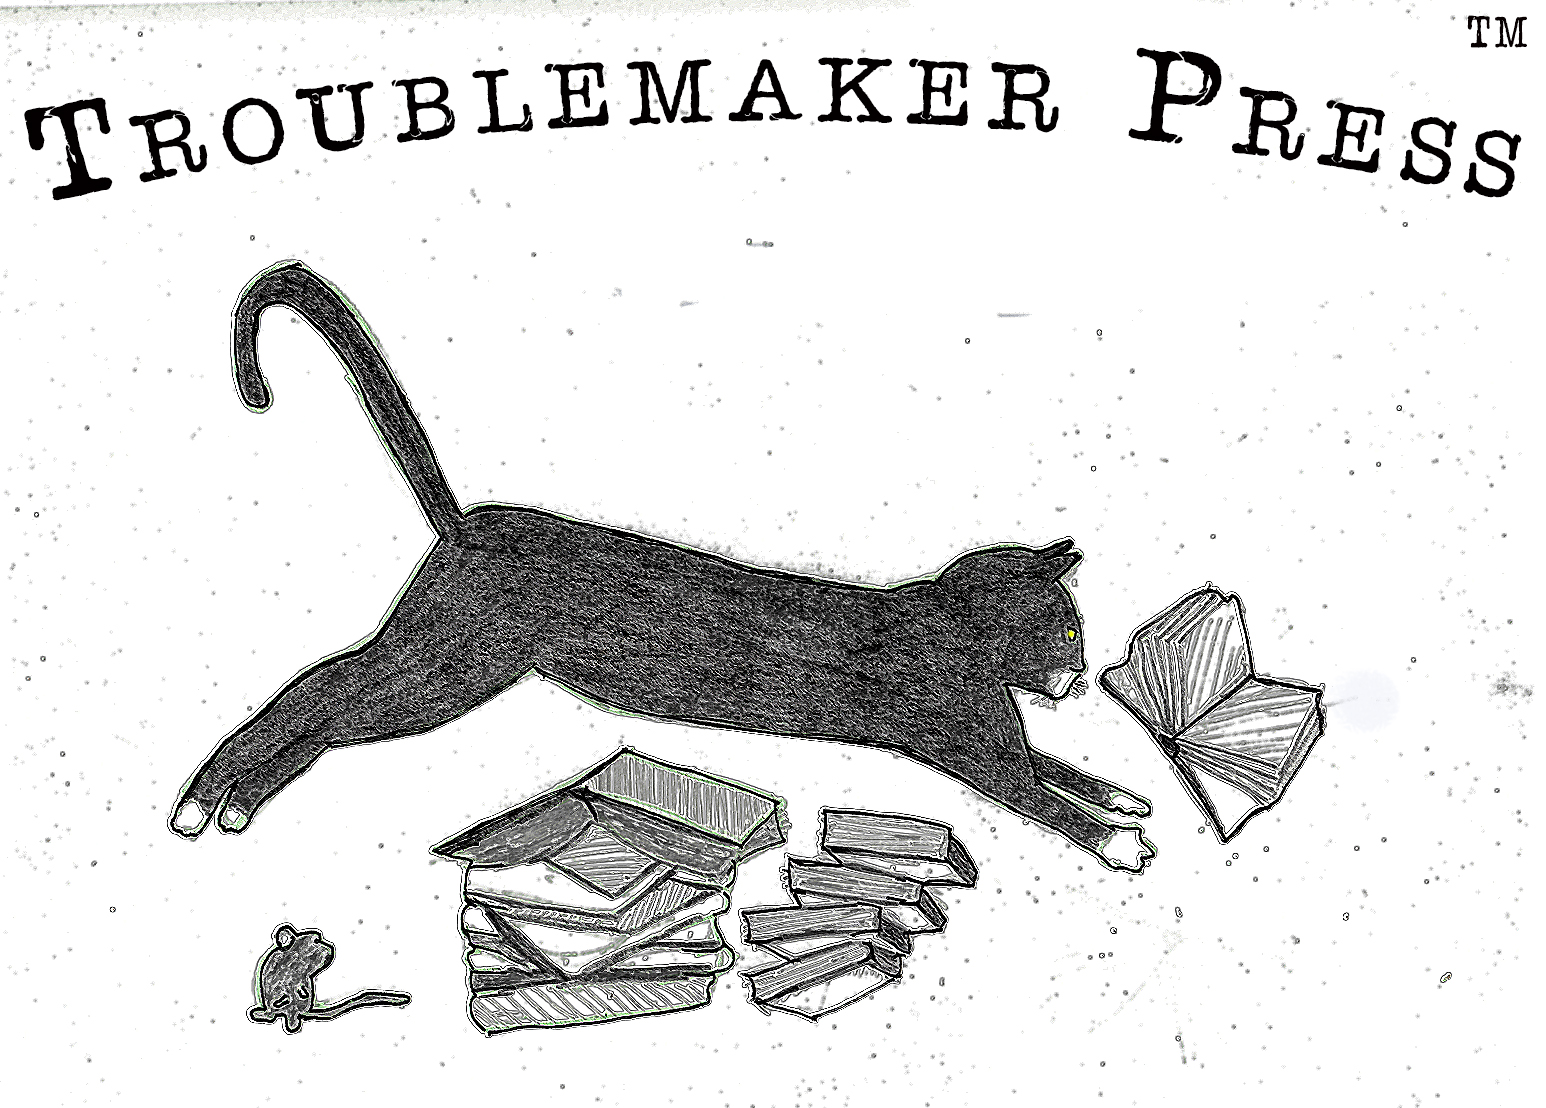 Logo for Troublemaker Press, featuring a black cat jumping over and scattering a pile of books, while a mouse watches.